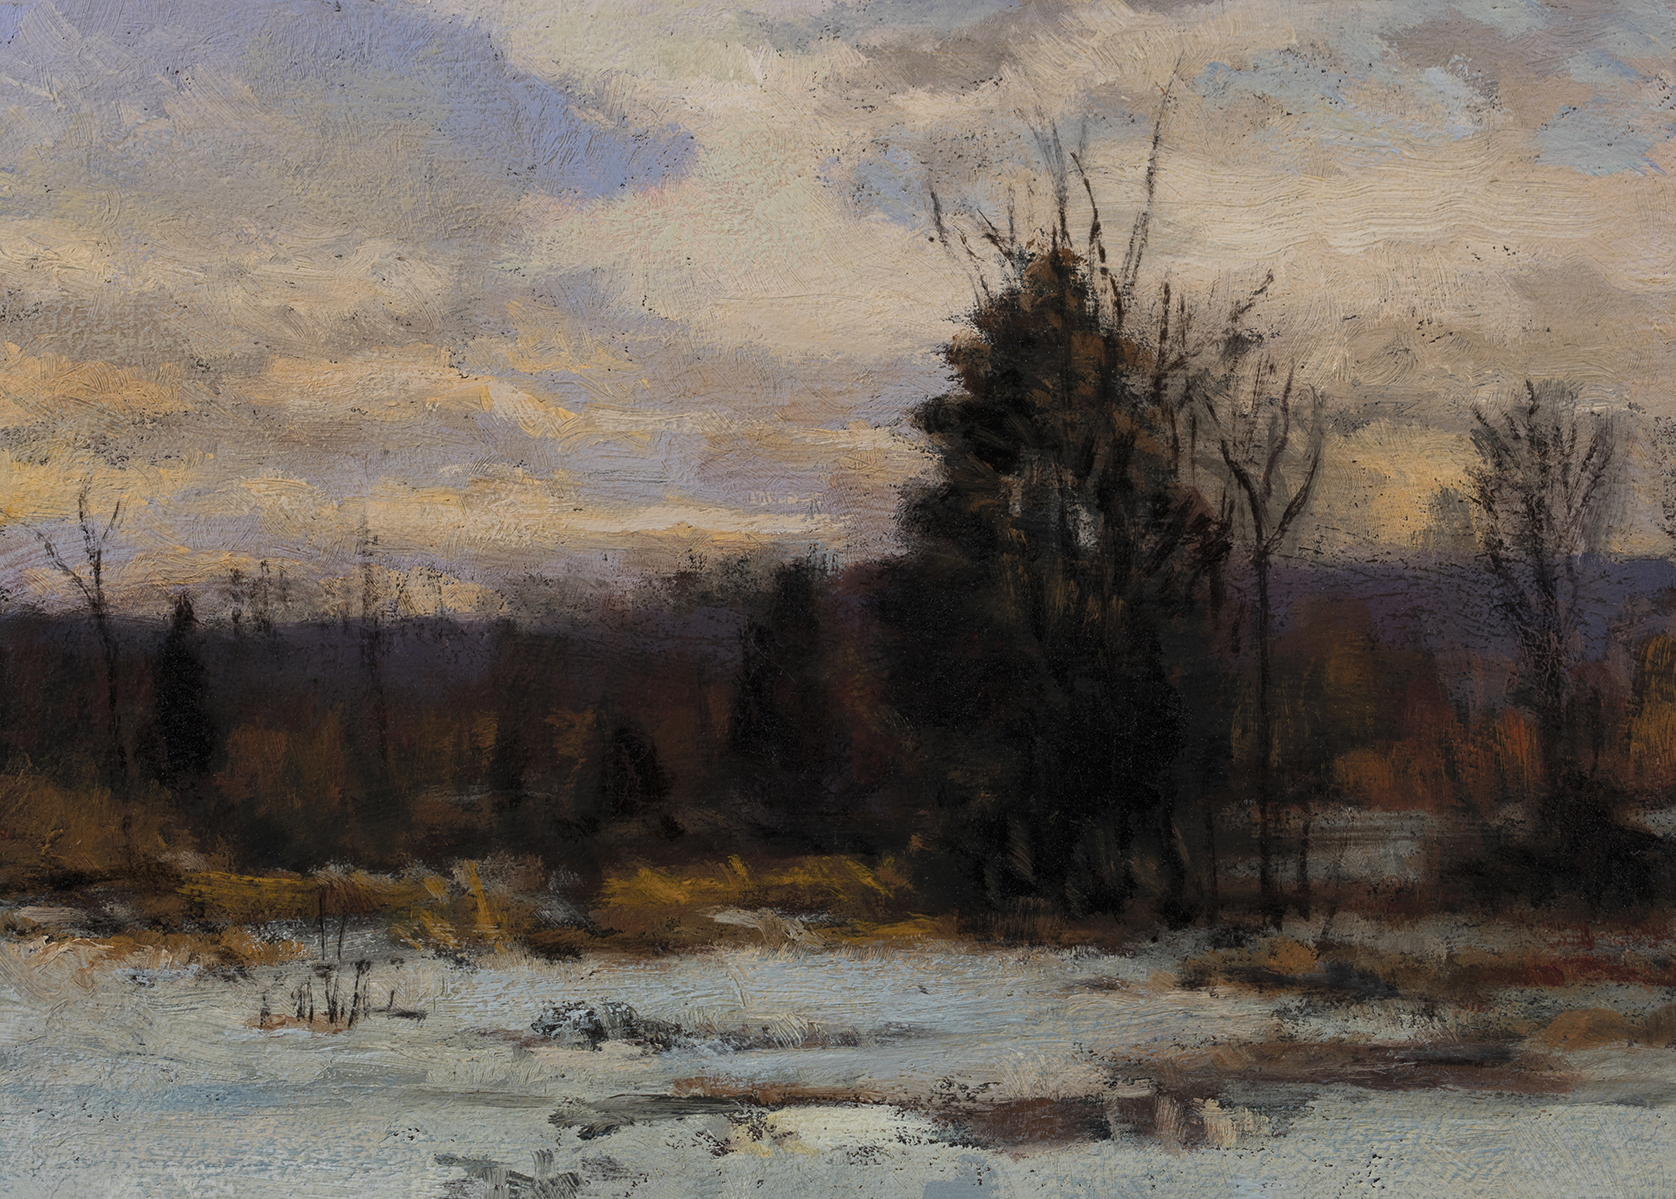 Study after: Hugh Bolton Jones - Winter Sunset by M Francis McCarthy - 5x7 Oil on Wood